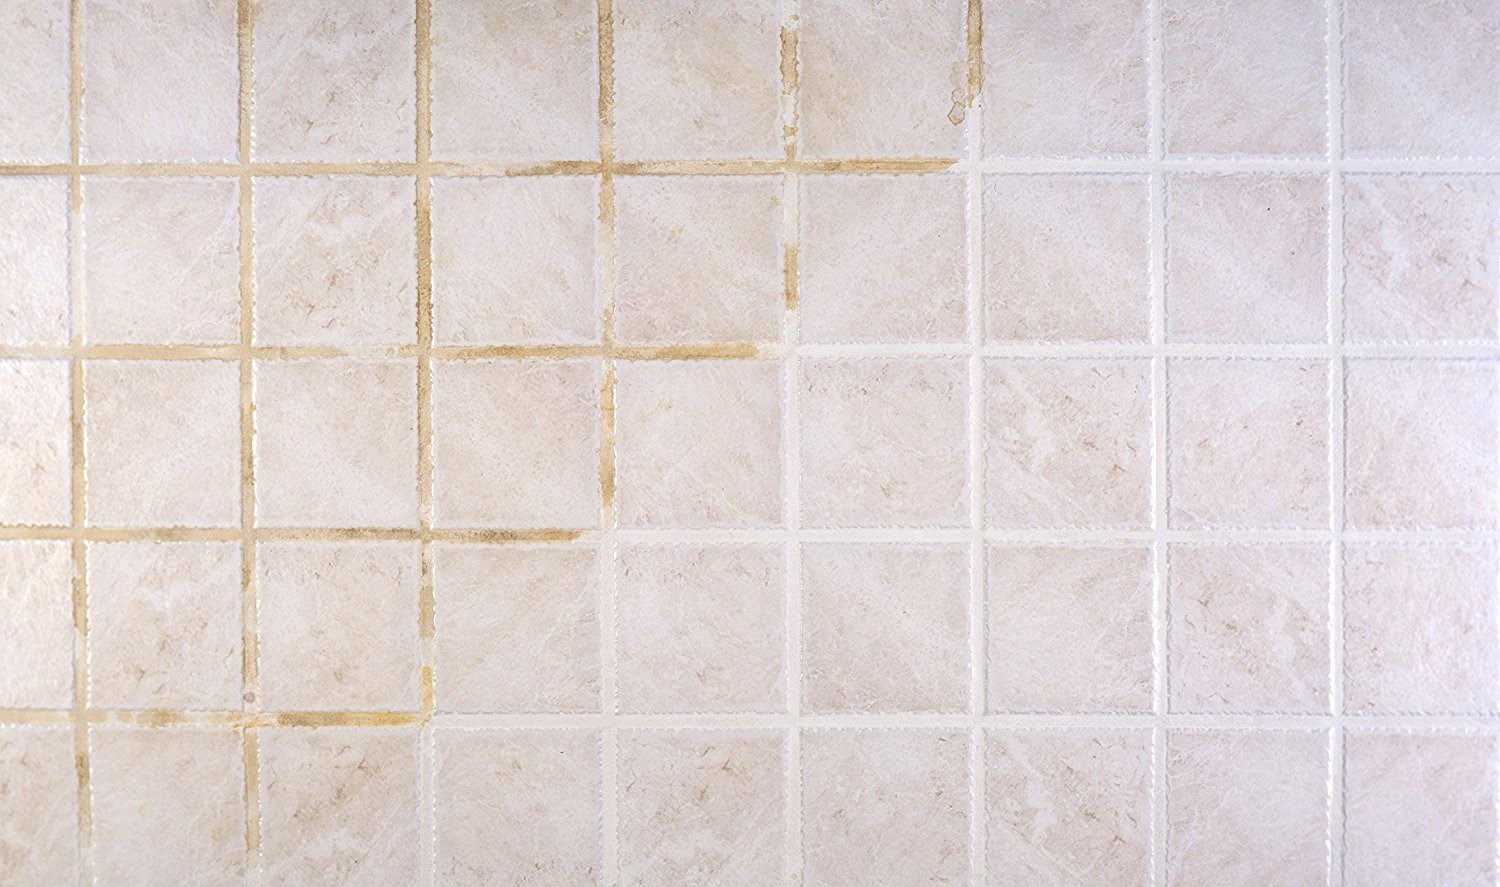 Bathroom Grout What Is The Best Bathroom Tile And Grout Cleaner Rockhill City